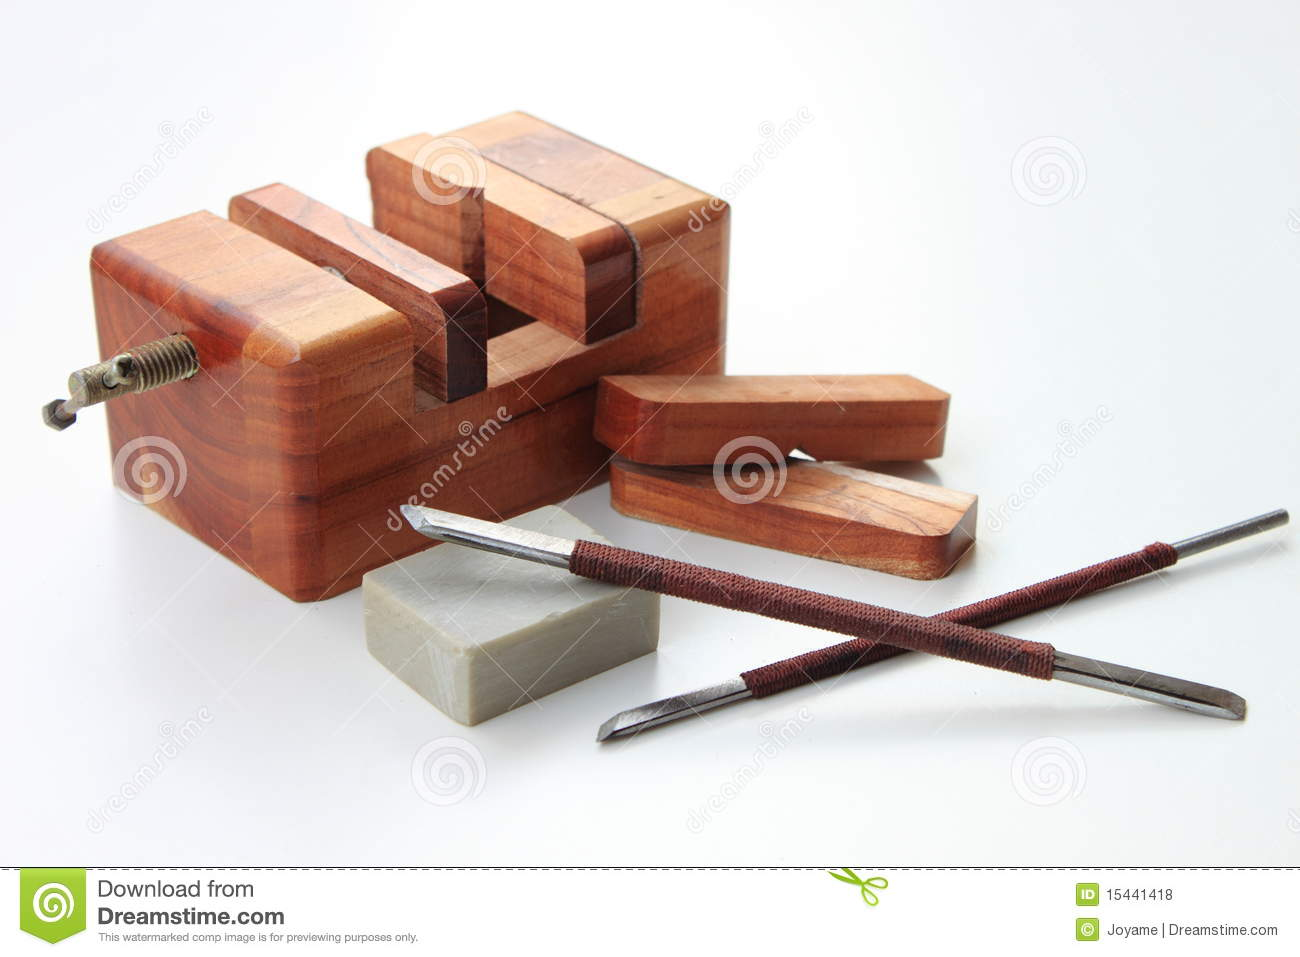 Carving tools royalty free stock photos image